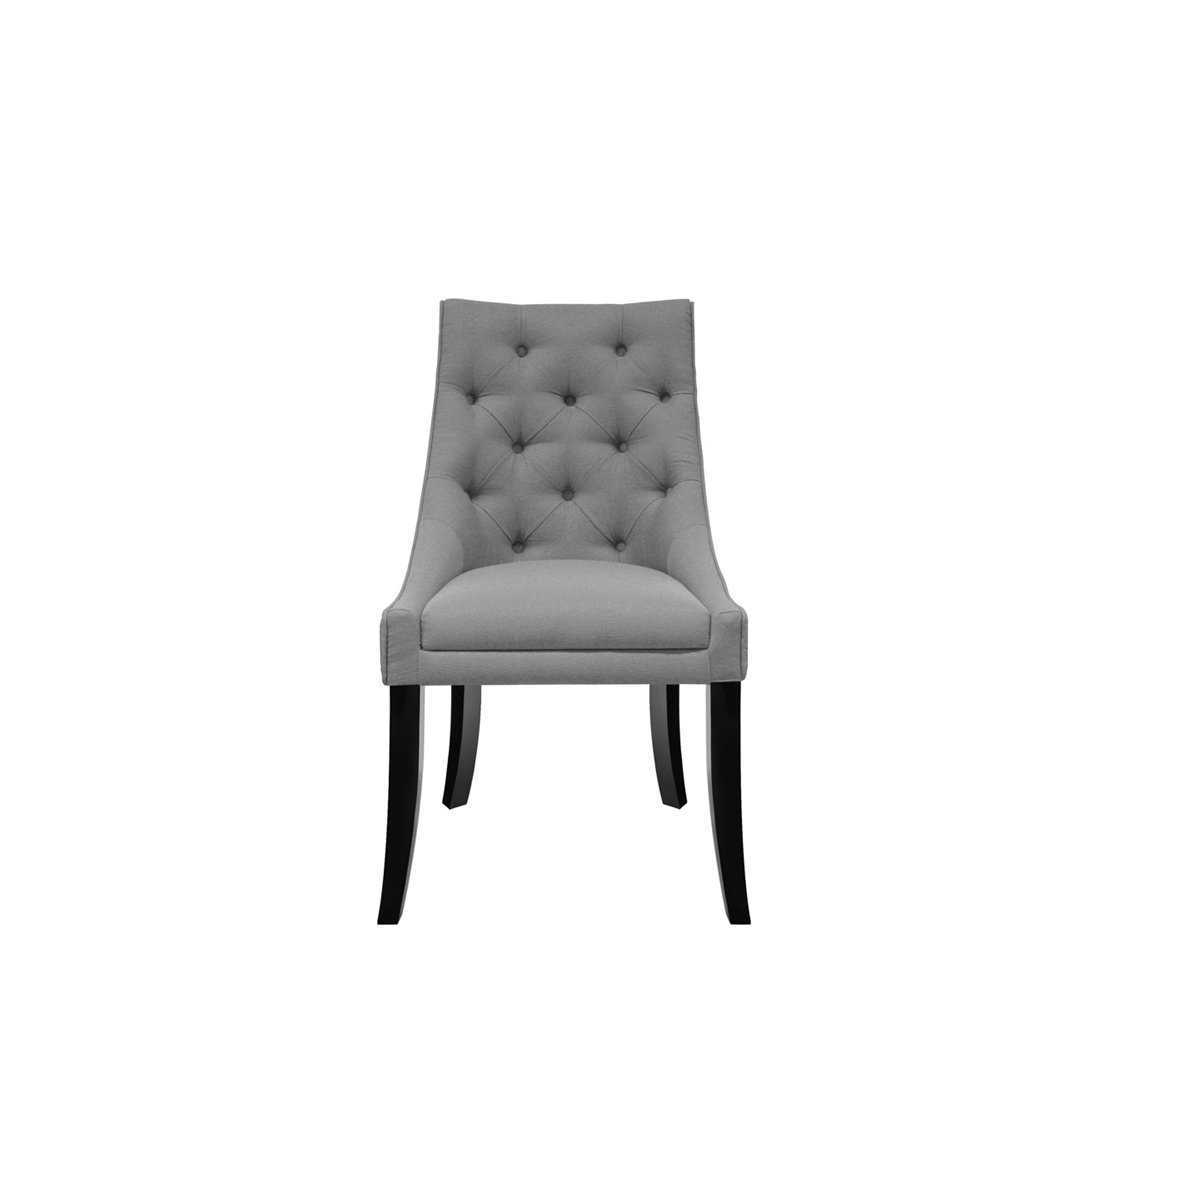 Dining room dining chairs sedona dining chair furnituretables and chairschairs